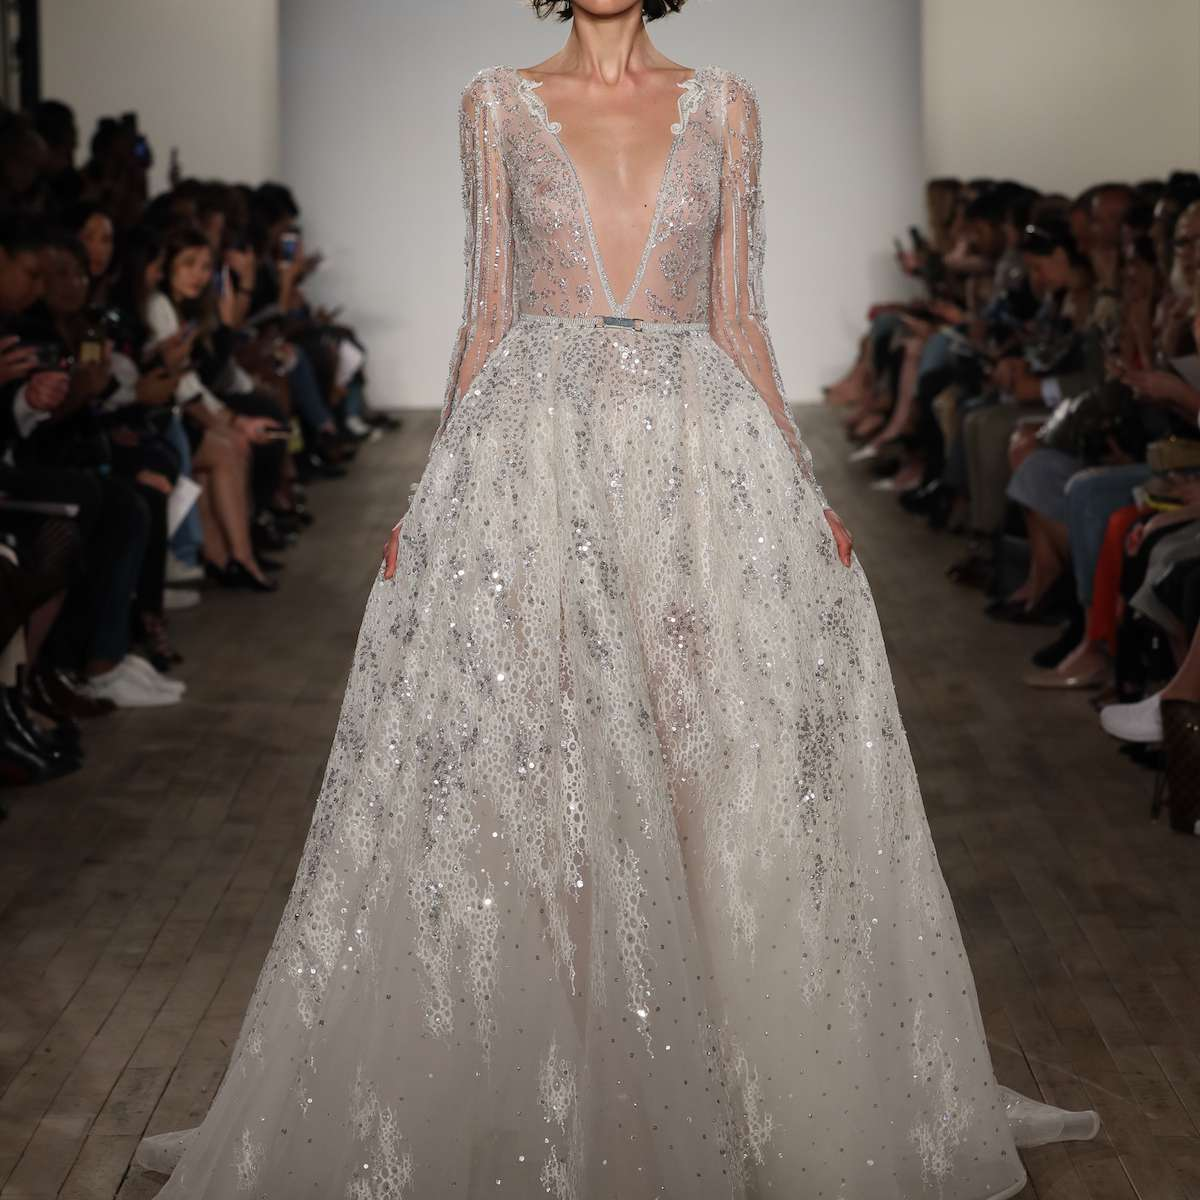 Model in plunging long sleeve wedding ball gown